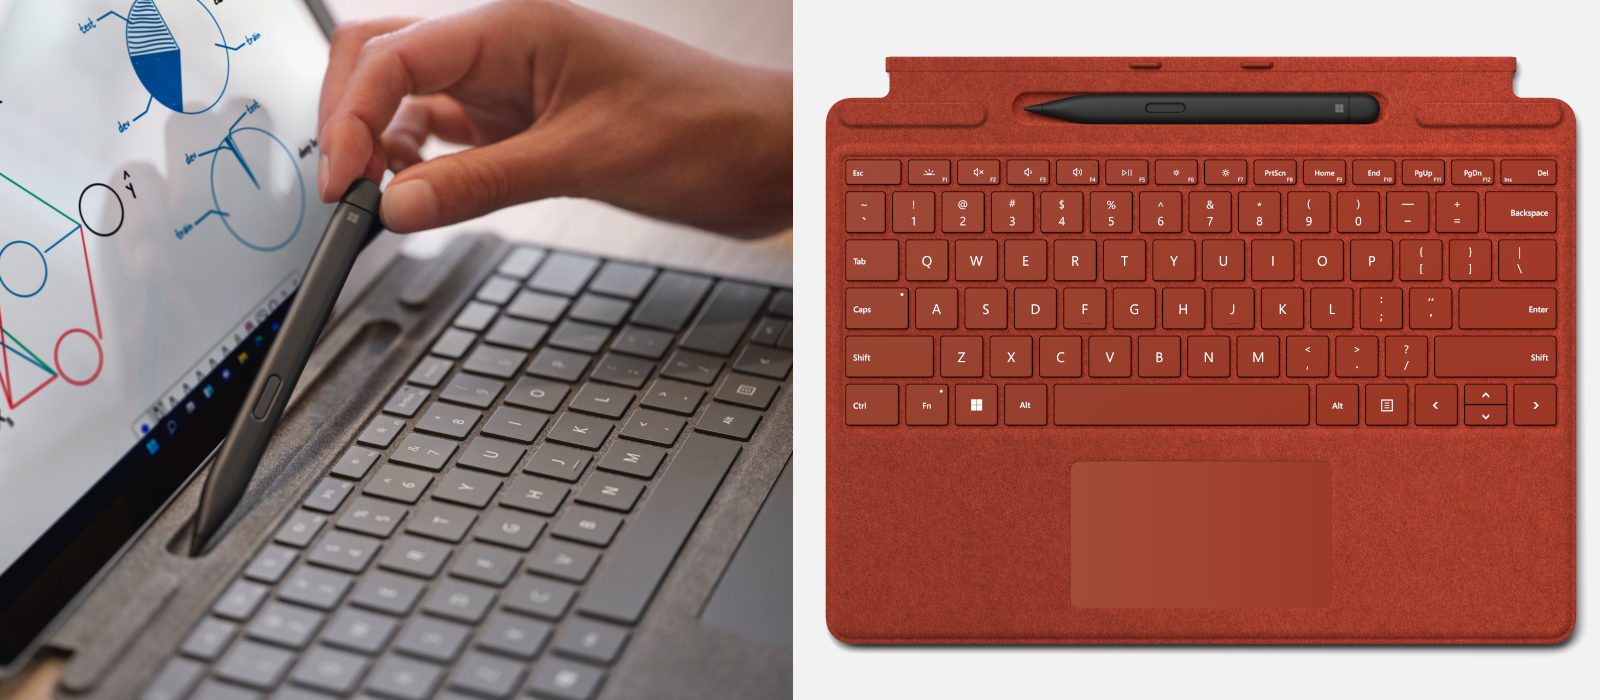 Two images show the Slim Pen 2 and the Surface Pro 8 Signature Keyboard.